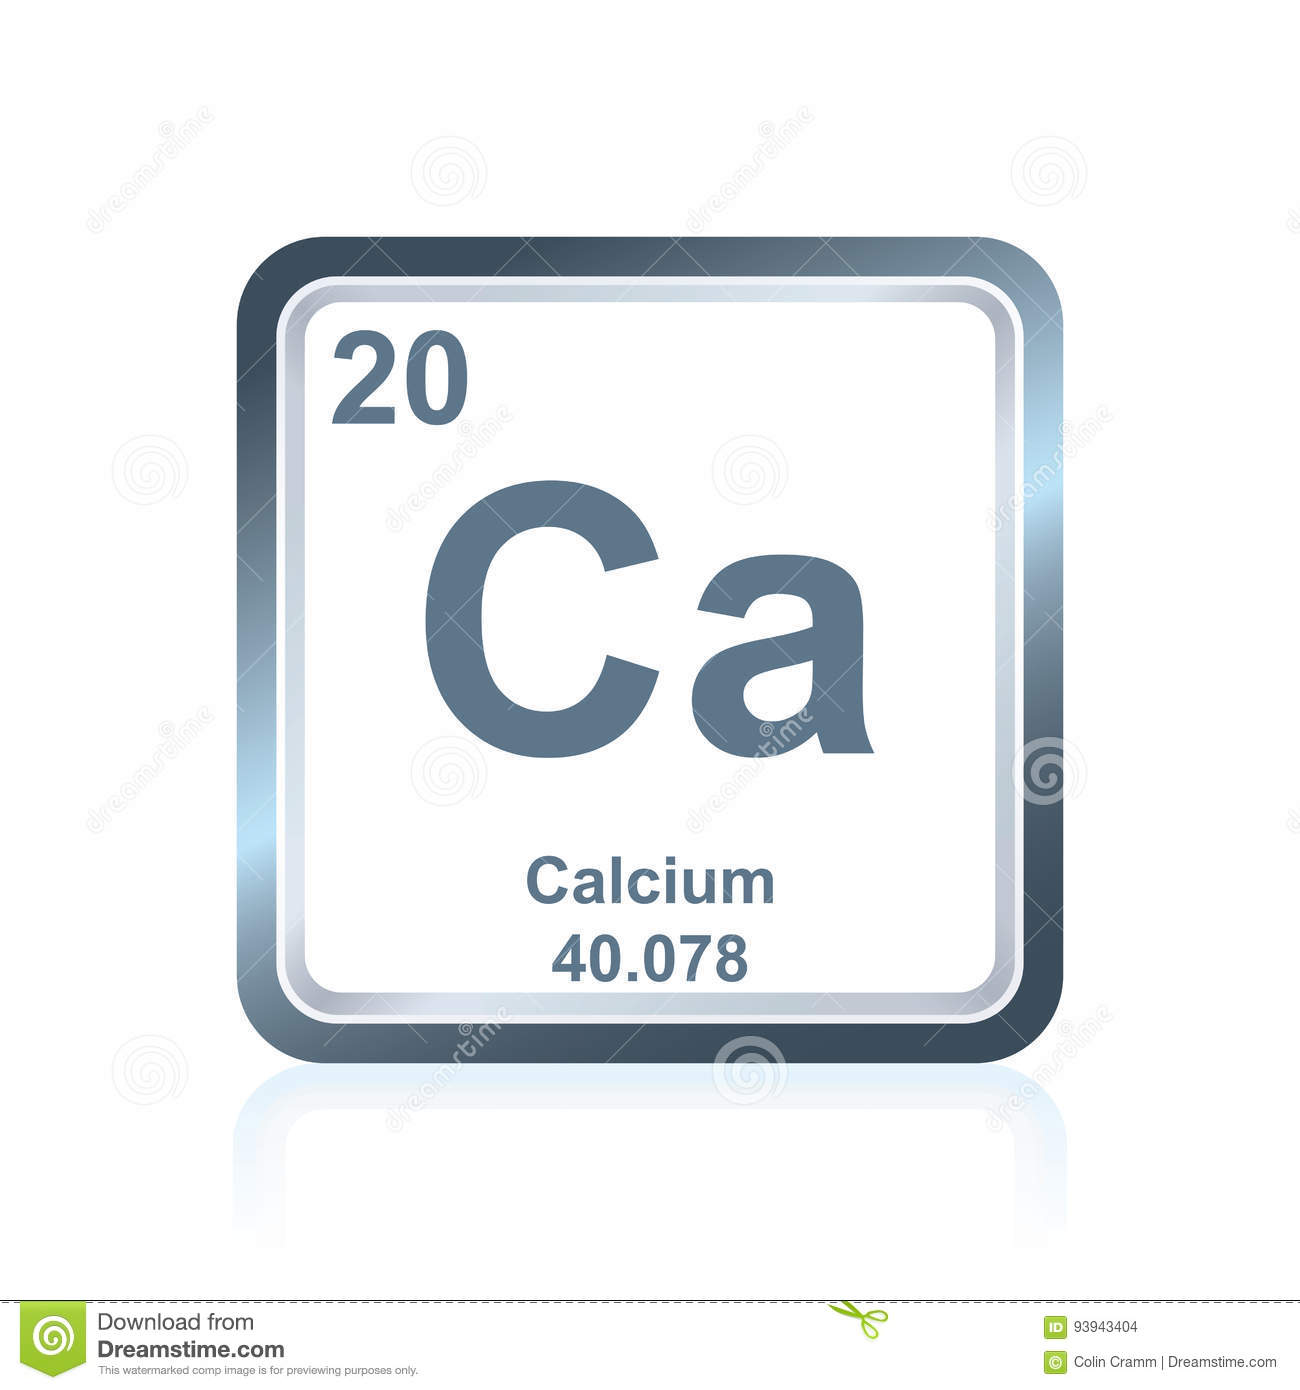 Chemical element calcium from the periodic table stock vector download chemical element calcium from the periodic table stock vector illustration of science research urtaz Choice Image